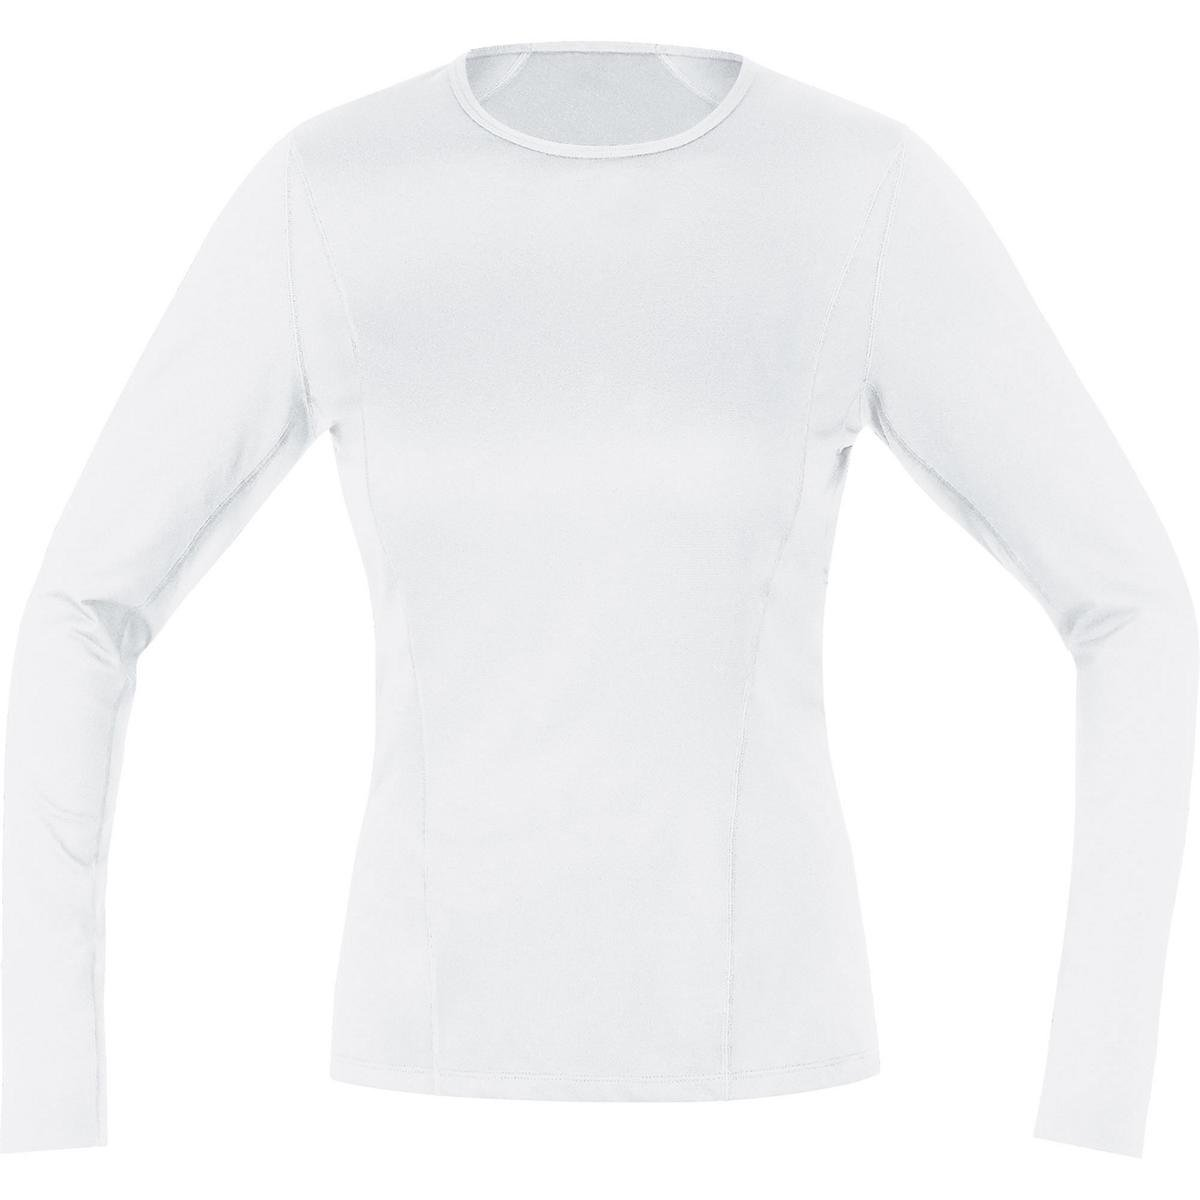 GORE BIKE WEAR Women's Thermal Undershirt, Long Sleeved, Stretchy, GORE Selected Fabrics, BASE LAYER LADY Thermo Shirt long UTSLLA-P